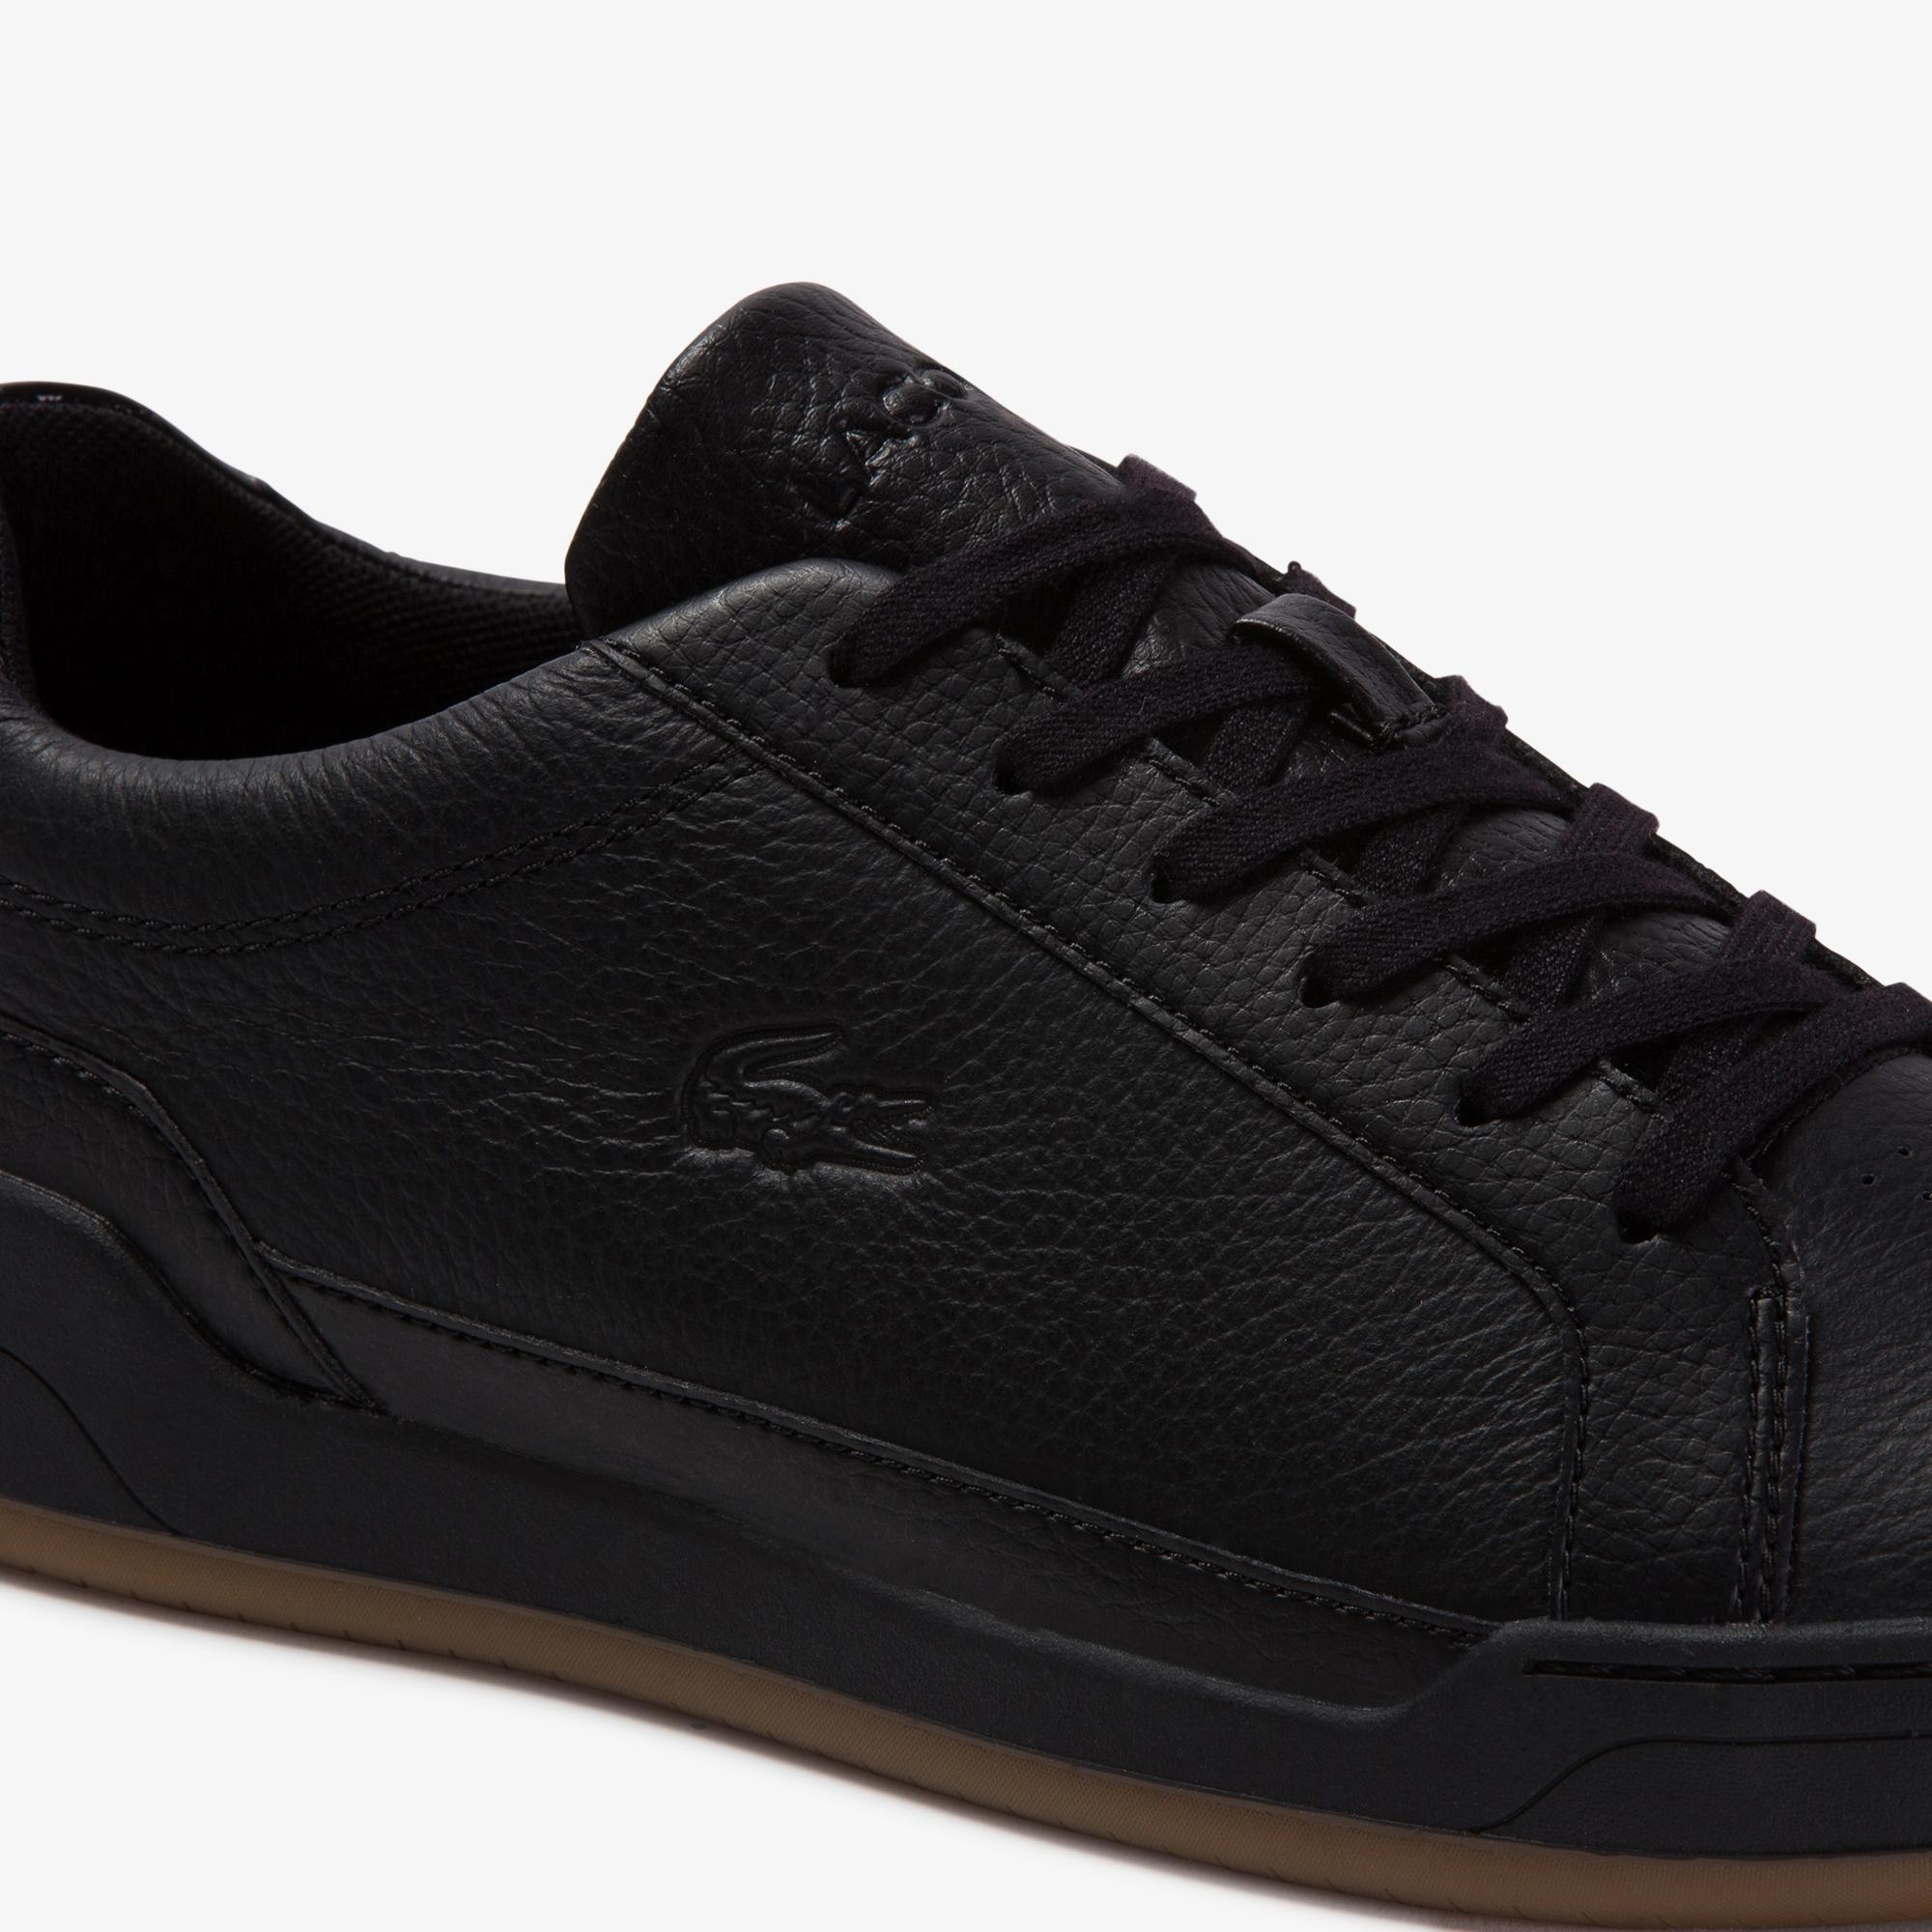 Lacoste Men's Challenge Tumbled Leather Sneakers